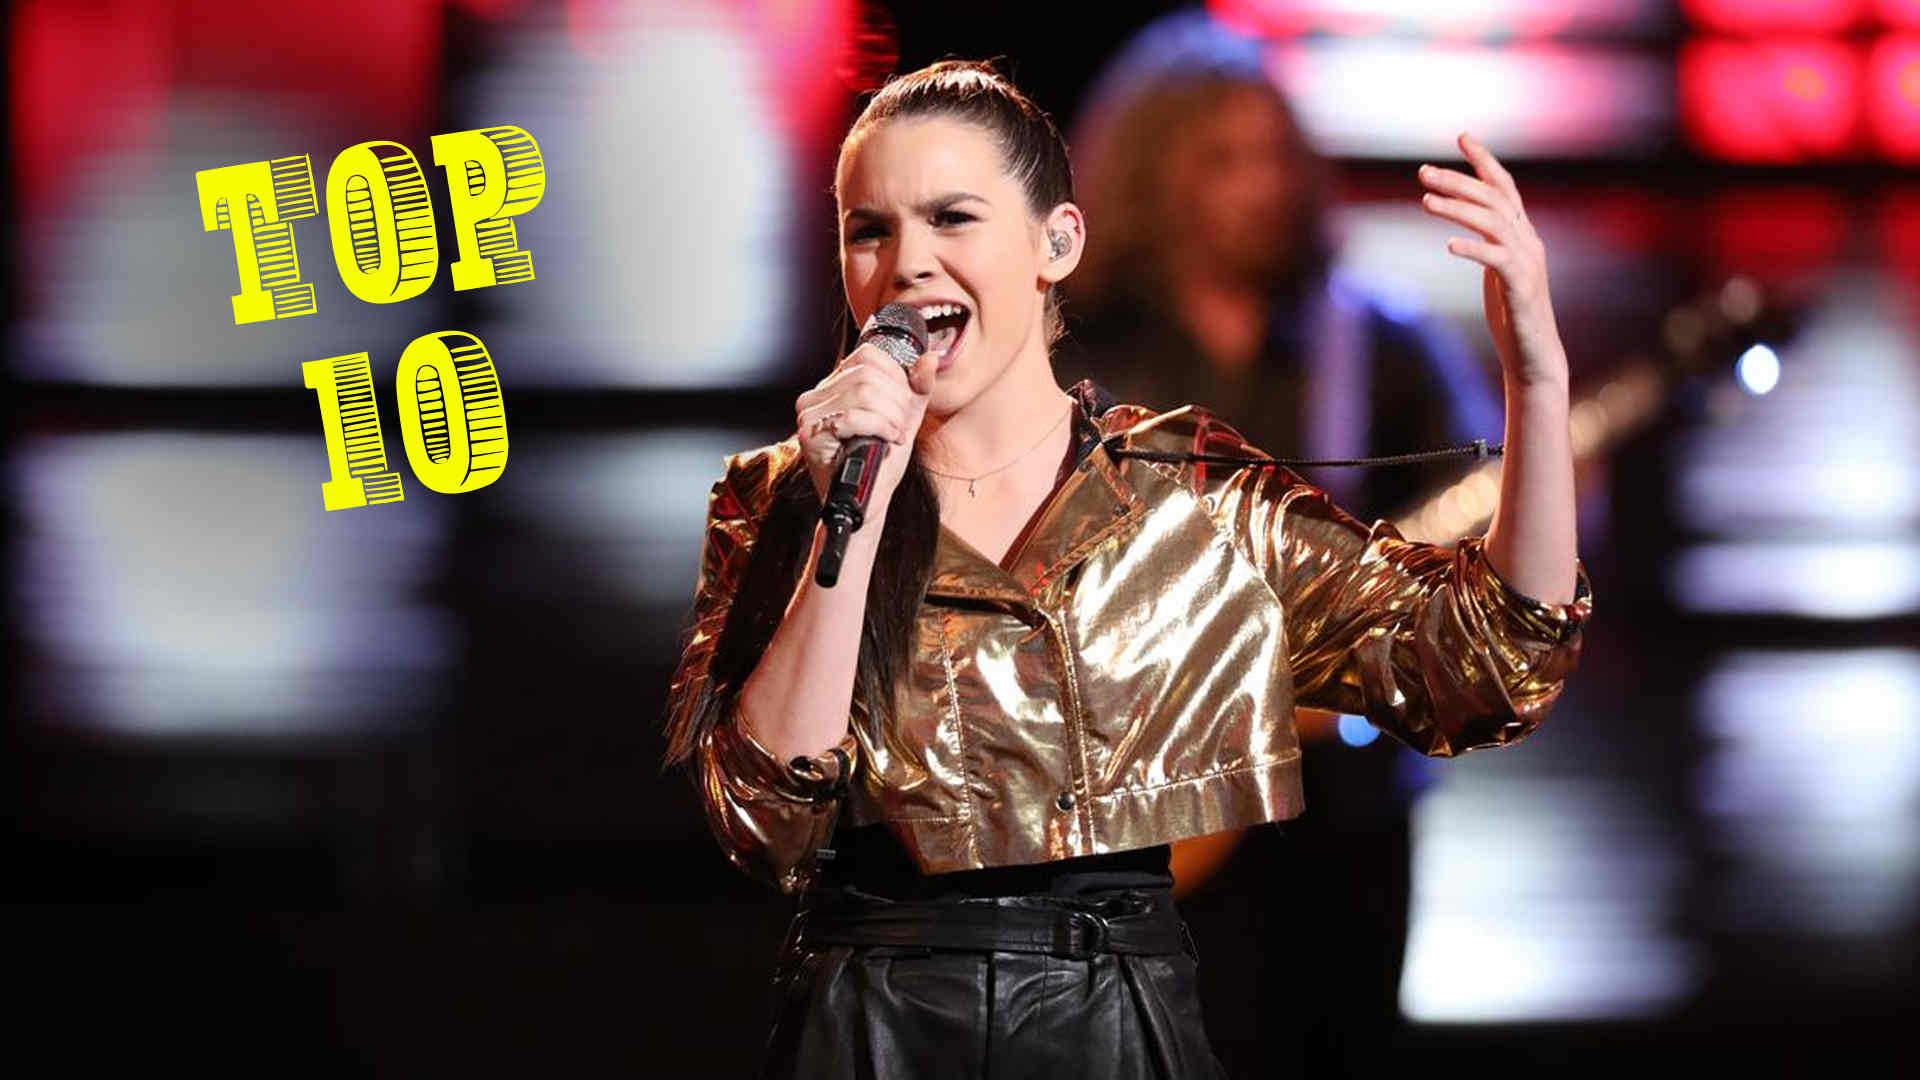 Vote Reagan Strange the Voice 2018 Live Top 10 on 3 December 2018 with The Voice 2018 Voting App Online